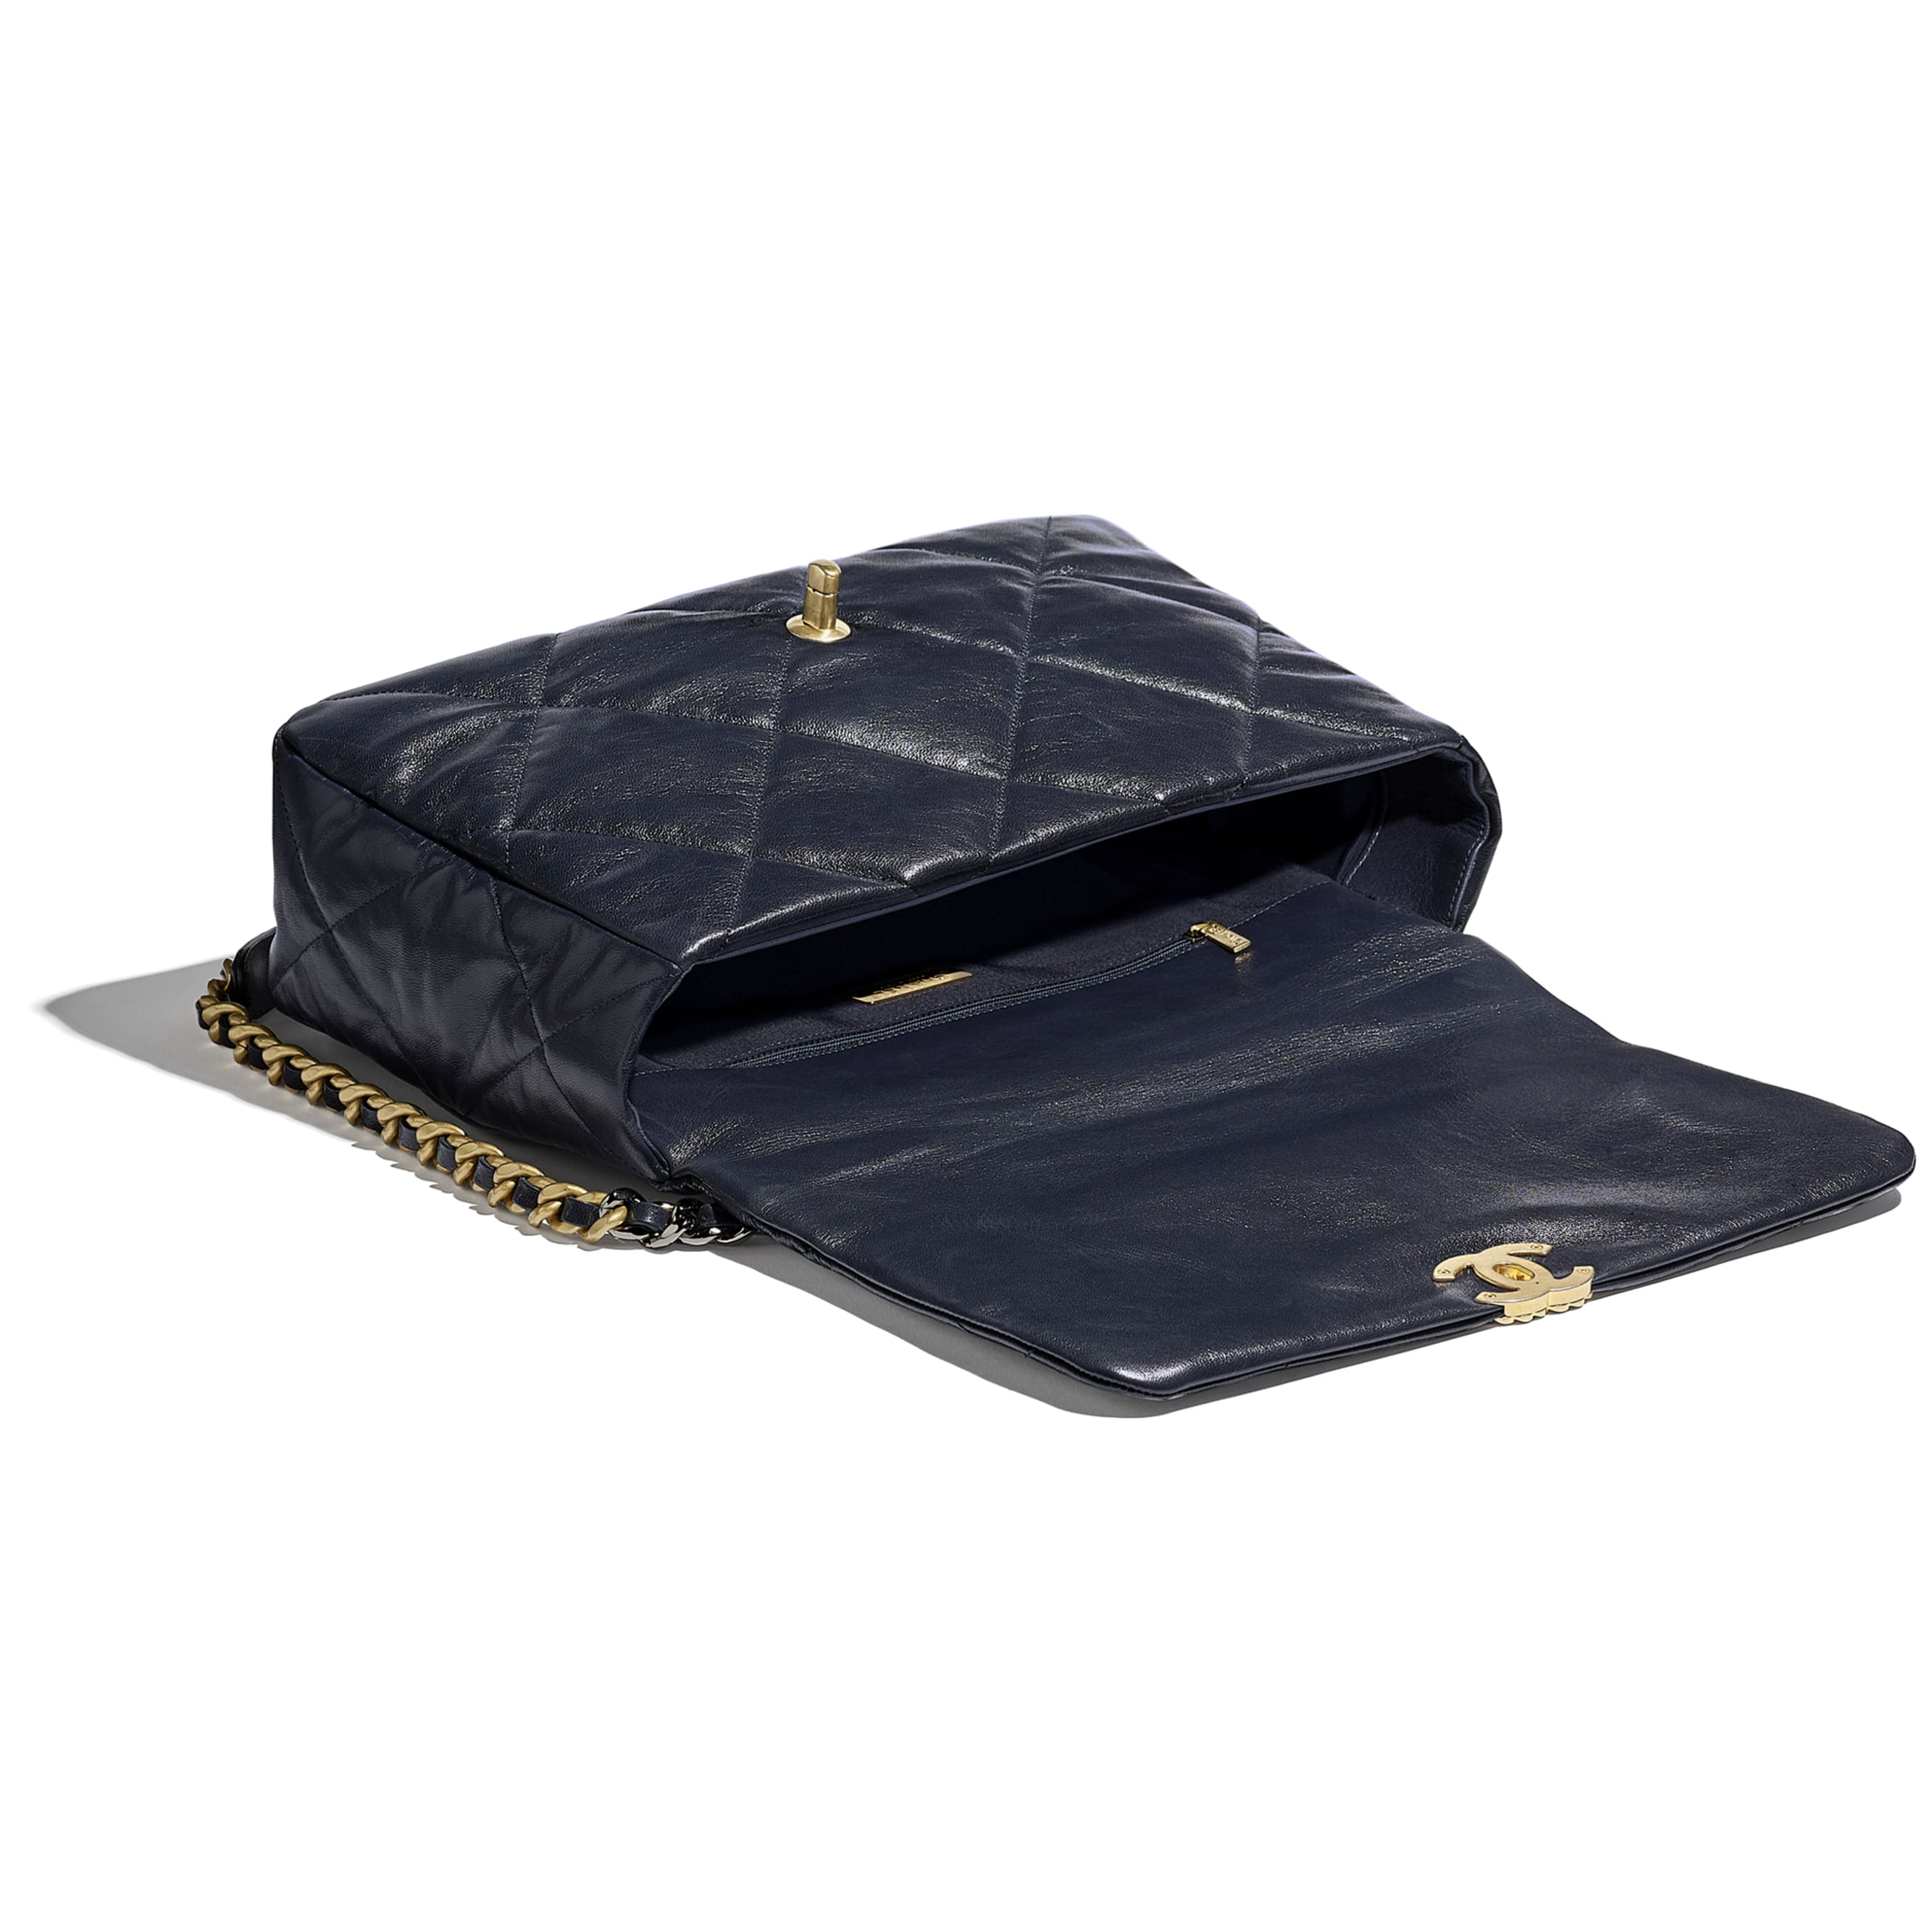 CHANEL 19 Maxi Flap Bag - Navy Blue - Goatskin, Gold-Tone, Silver-Tone & Ruthenium-Finish Metal - CHANEL - Other view - see standard sized version